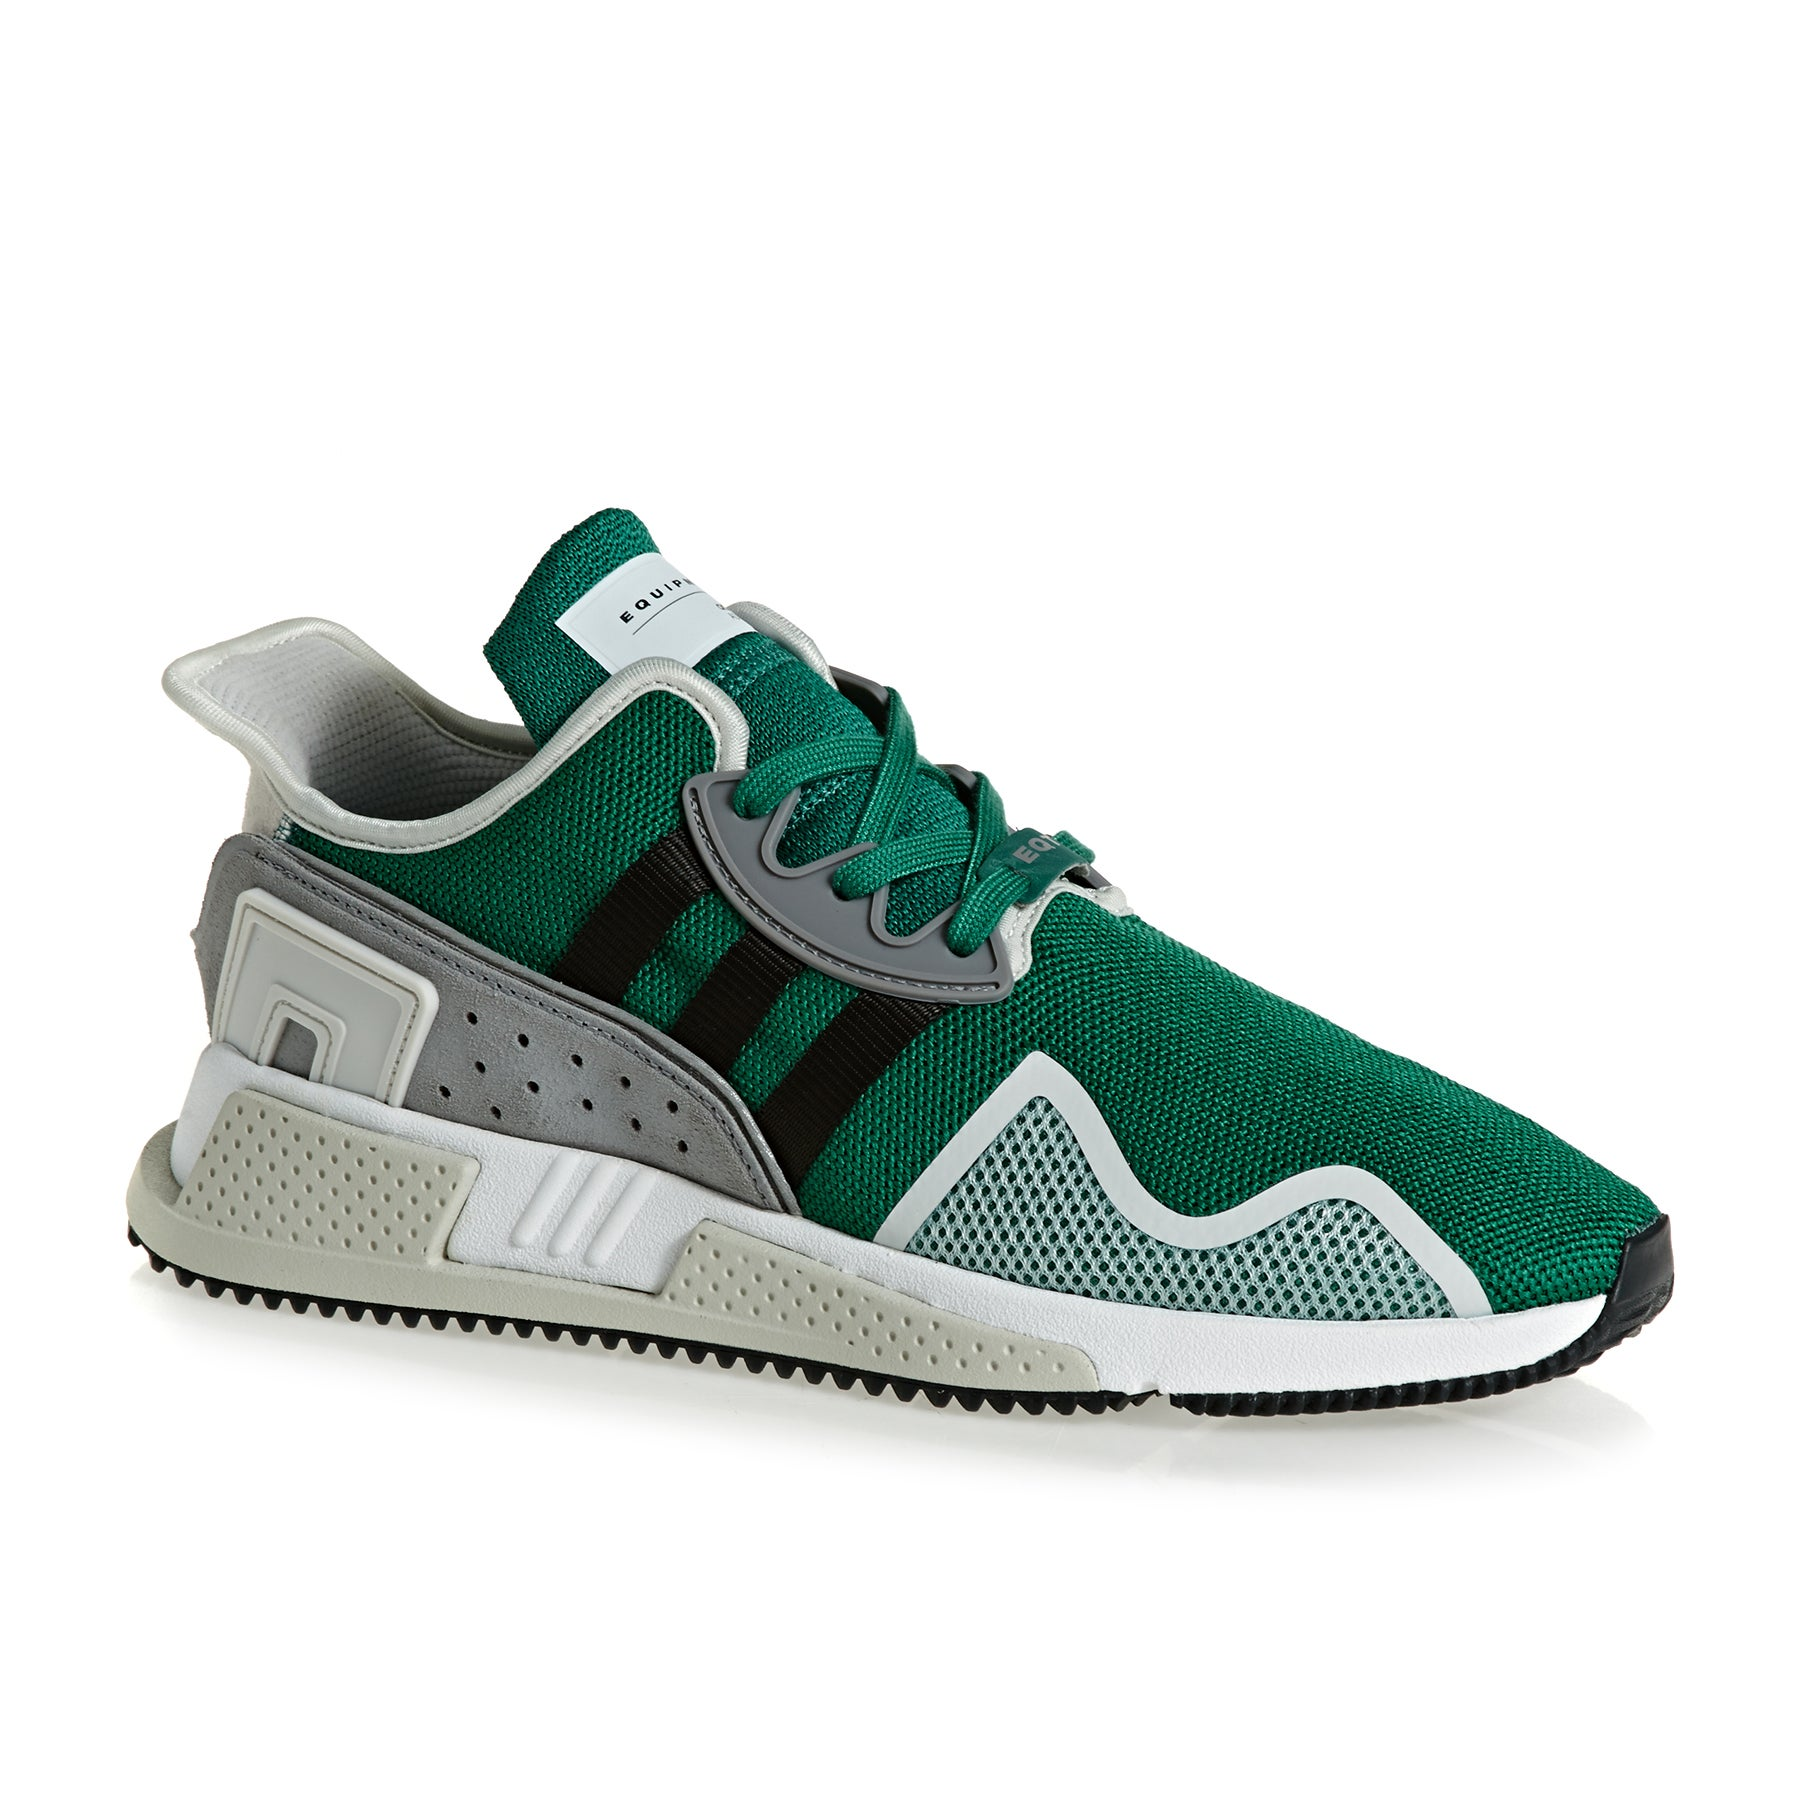 Adidas Originals EQT Cushion Adv Shoes - Green Black Grey